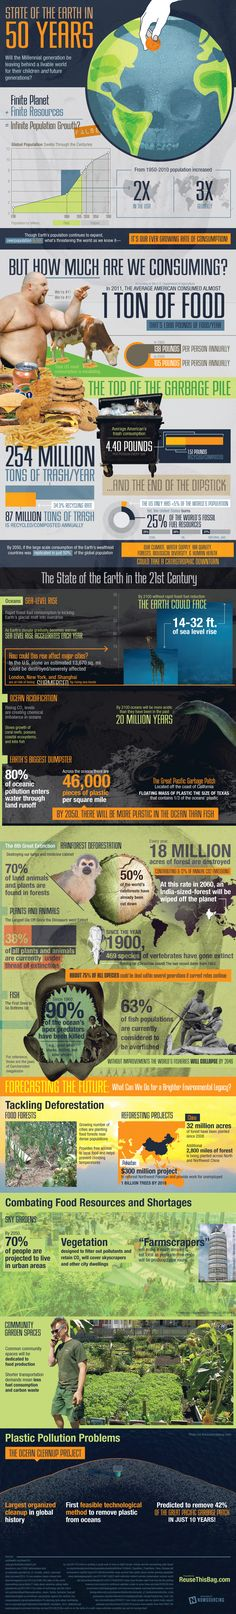 State of the Earth in 50 years #Infographic #Earth